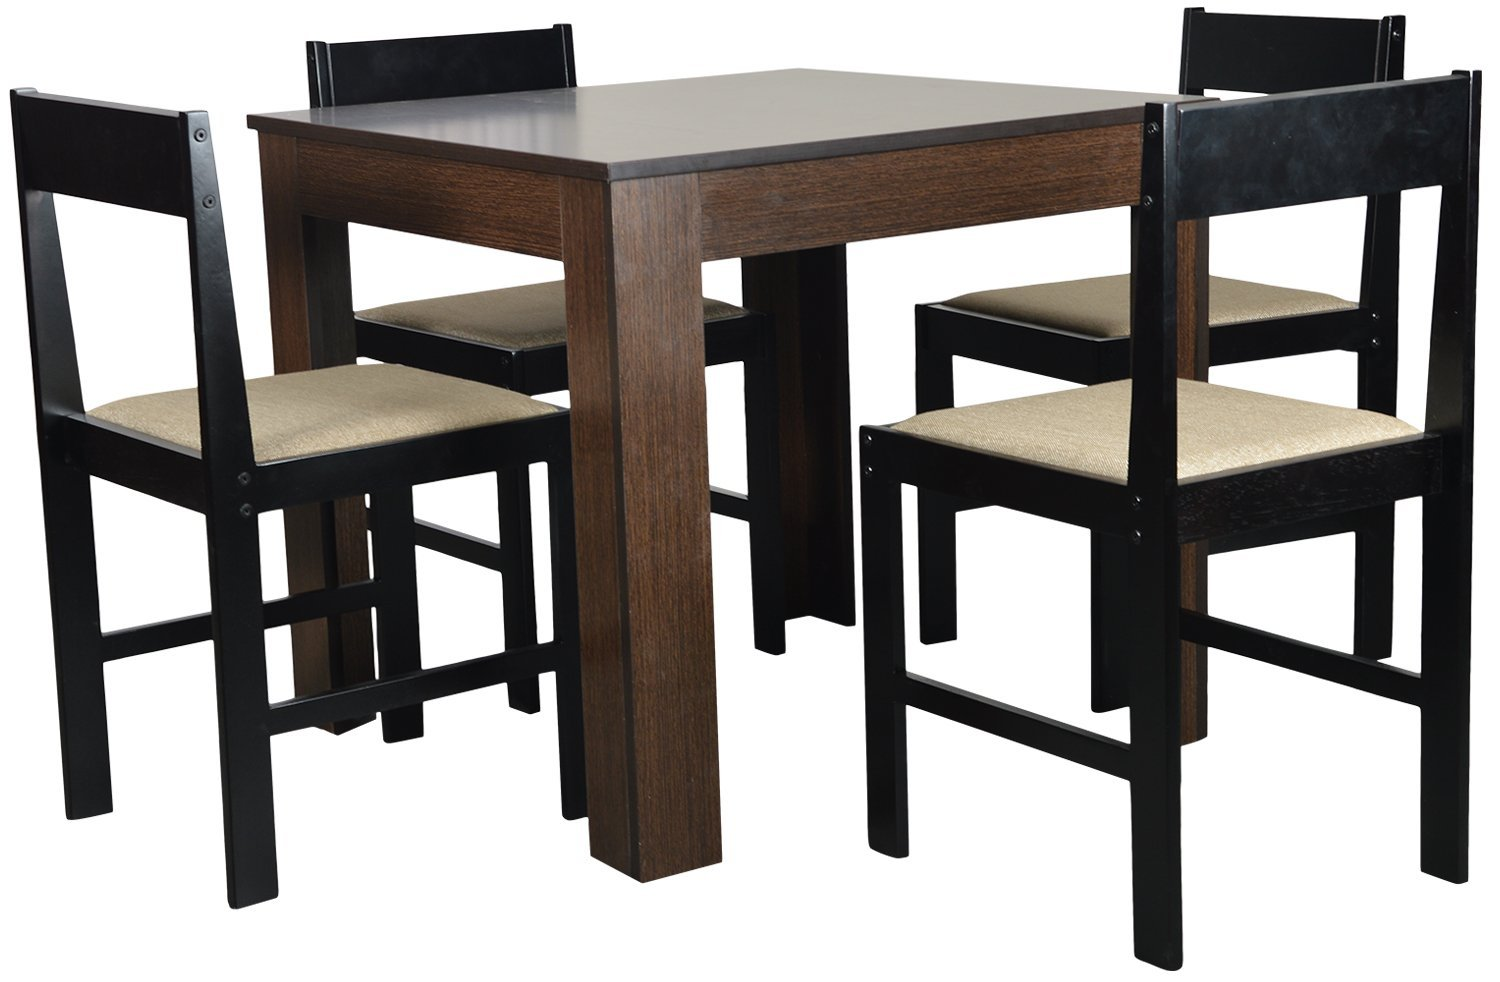 square dining table sets. Forzza Peter Four Seater Square Dining Table Set (Wenge): Amazon.in: Home \u0026 Kitchen Sets U